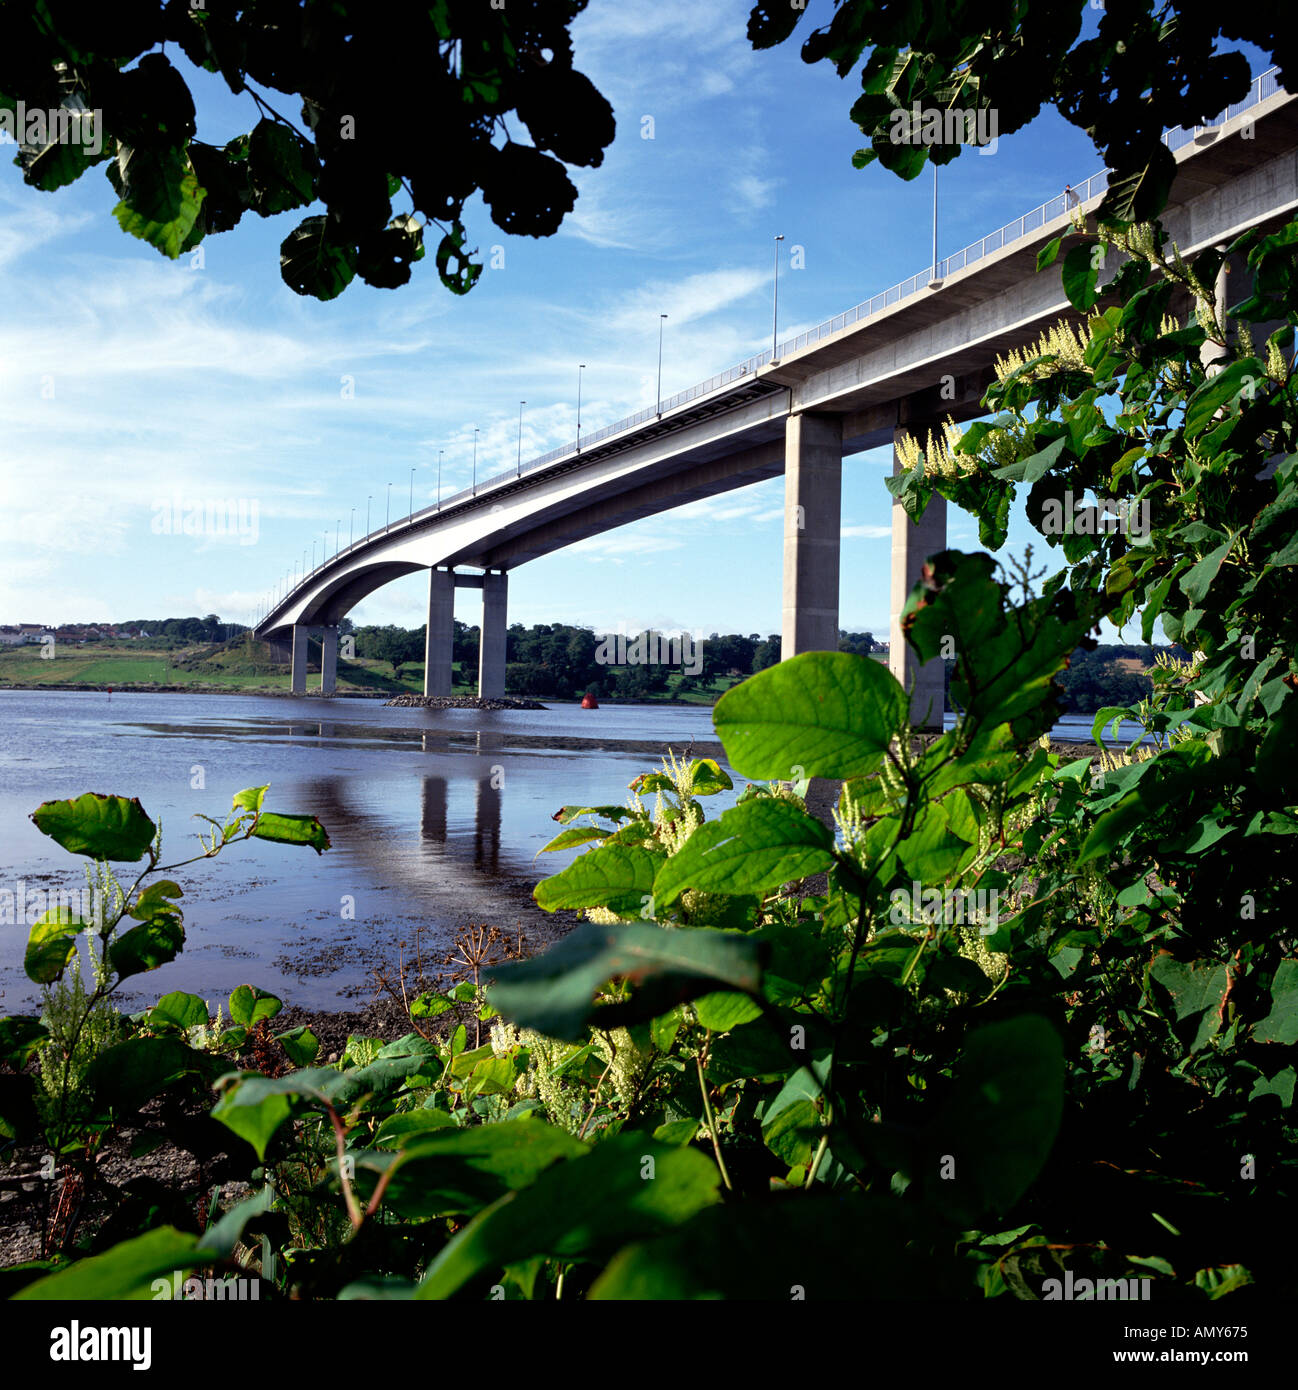 Foyle Bridge Co Londonderry Northern Ireland - Stock Image